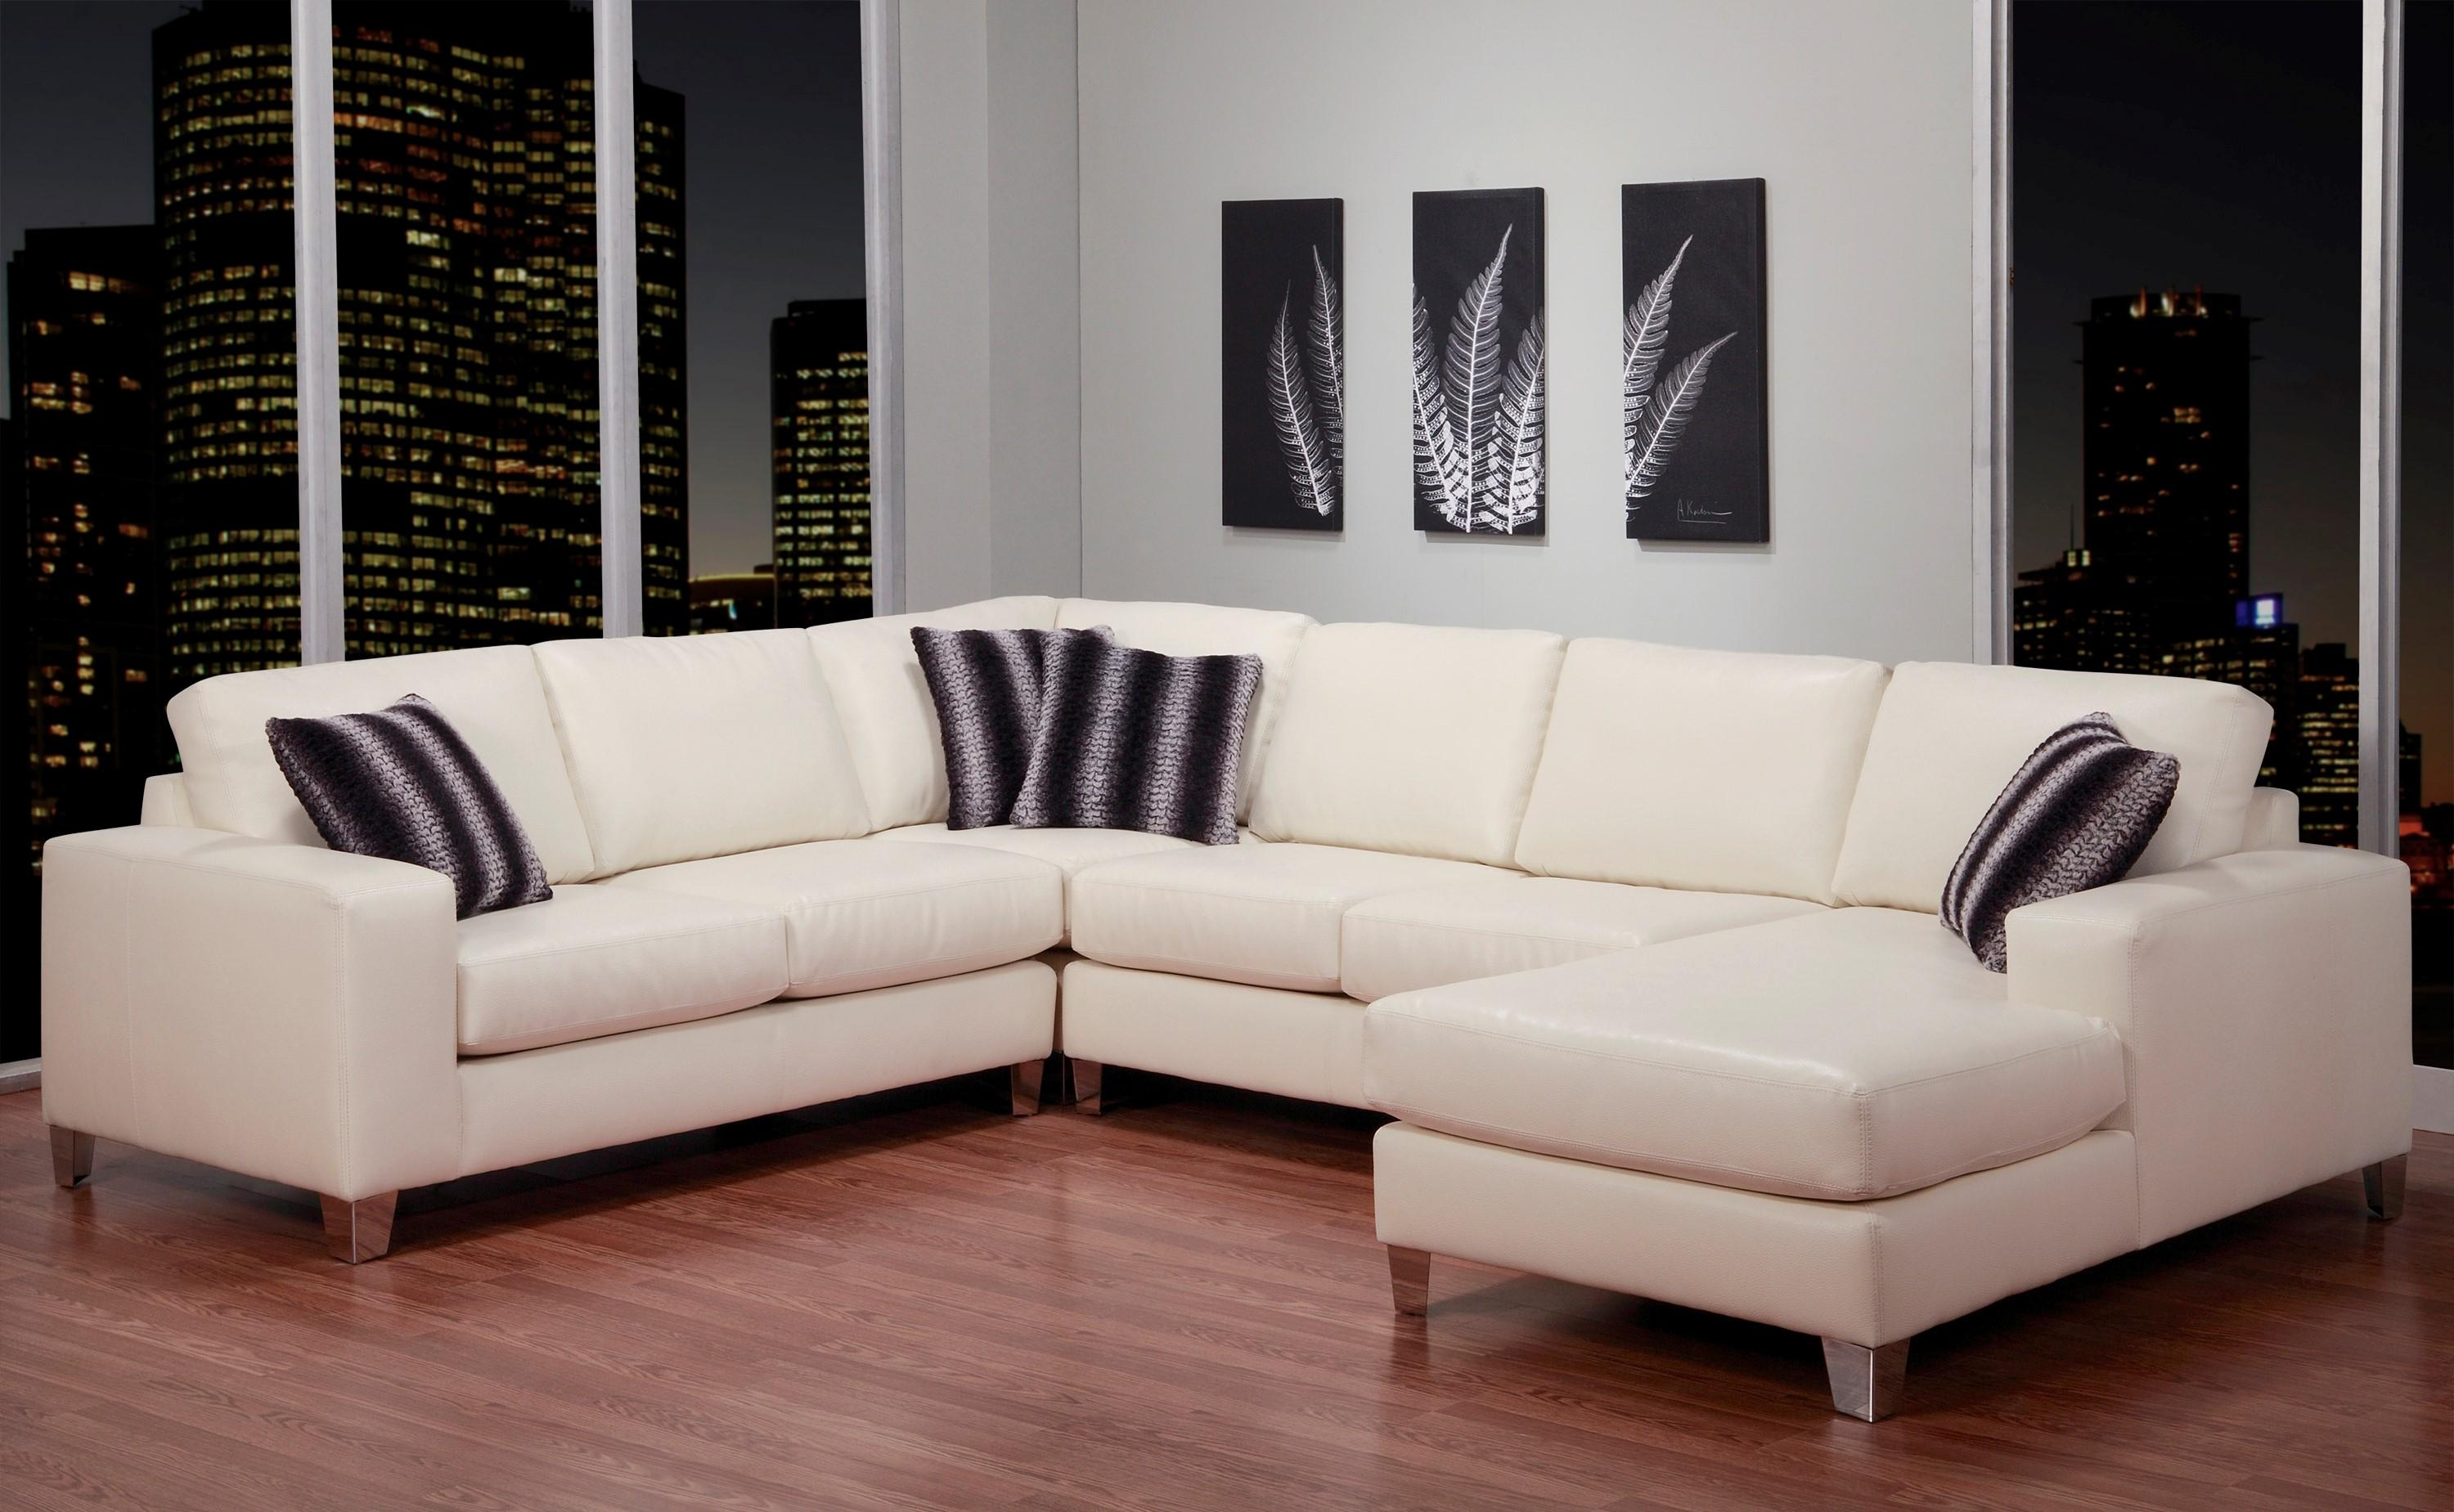 Genuine Leather Sectionals In Toronto & Mississauga | Living Pertaining To Leather Sectional Sofas Toronto (View 3 of 20)